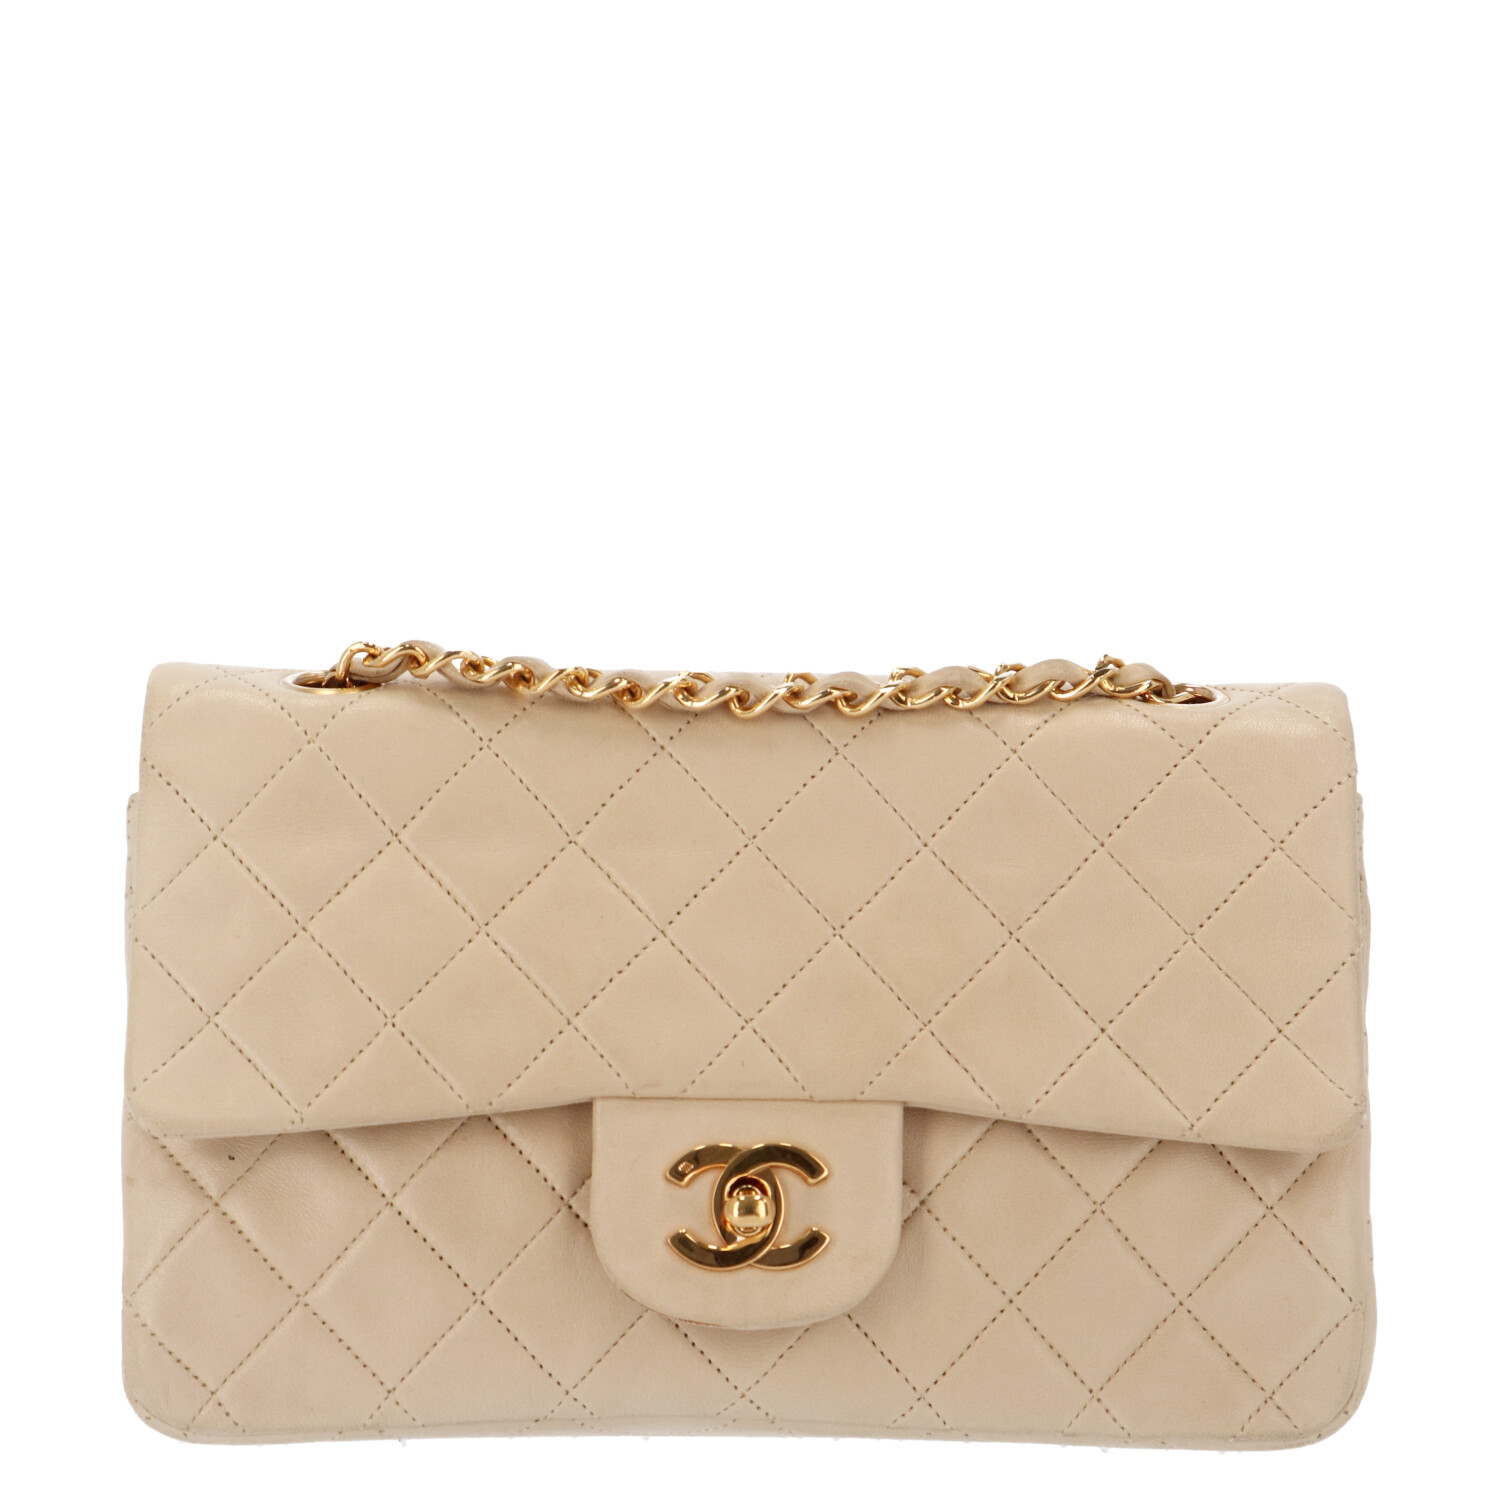 Beige Small Lambskin Classic Double Flap Bag